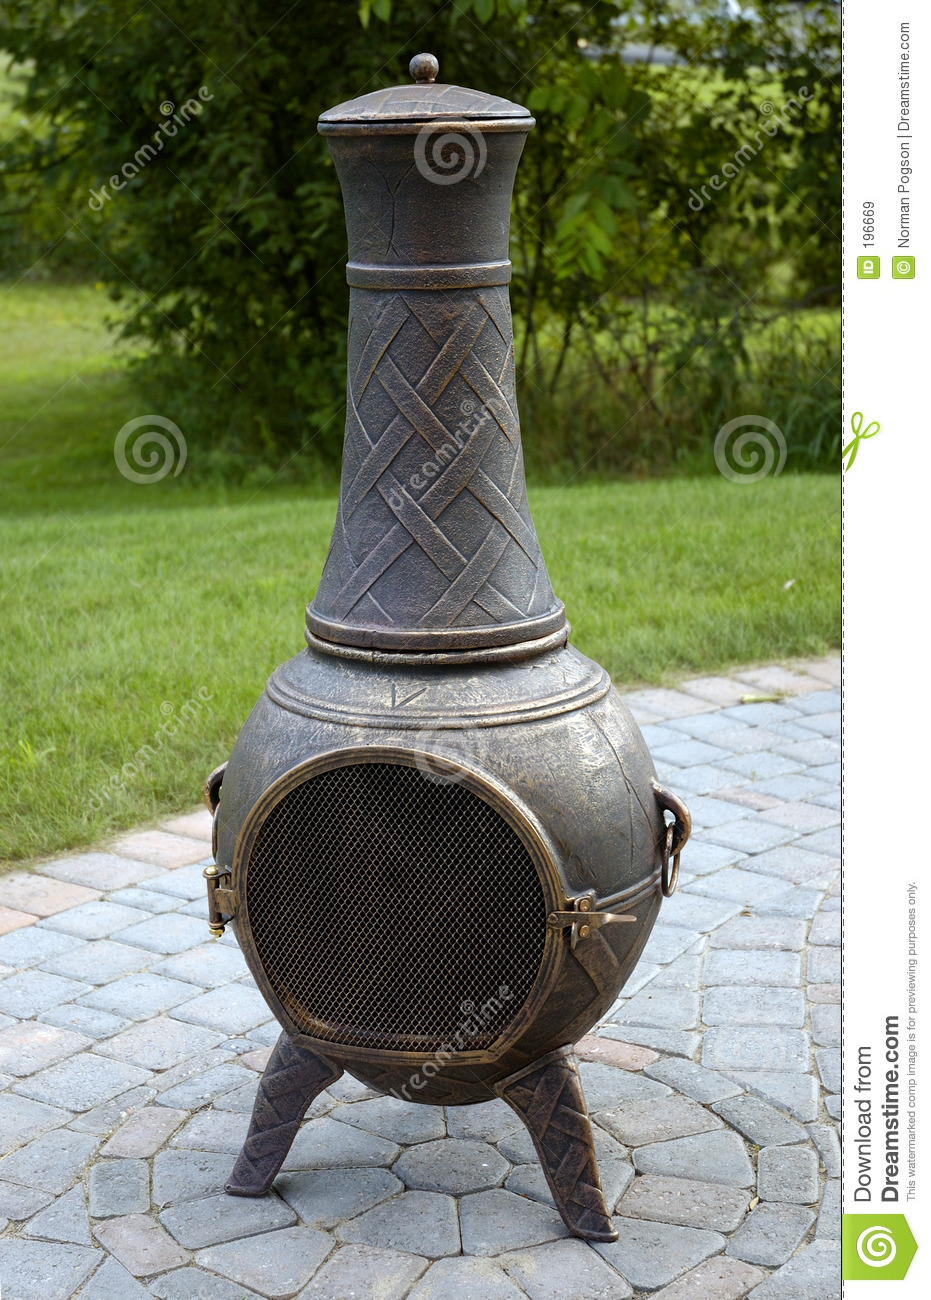 chiminea fire pot royalty free stock images image 196669